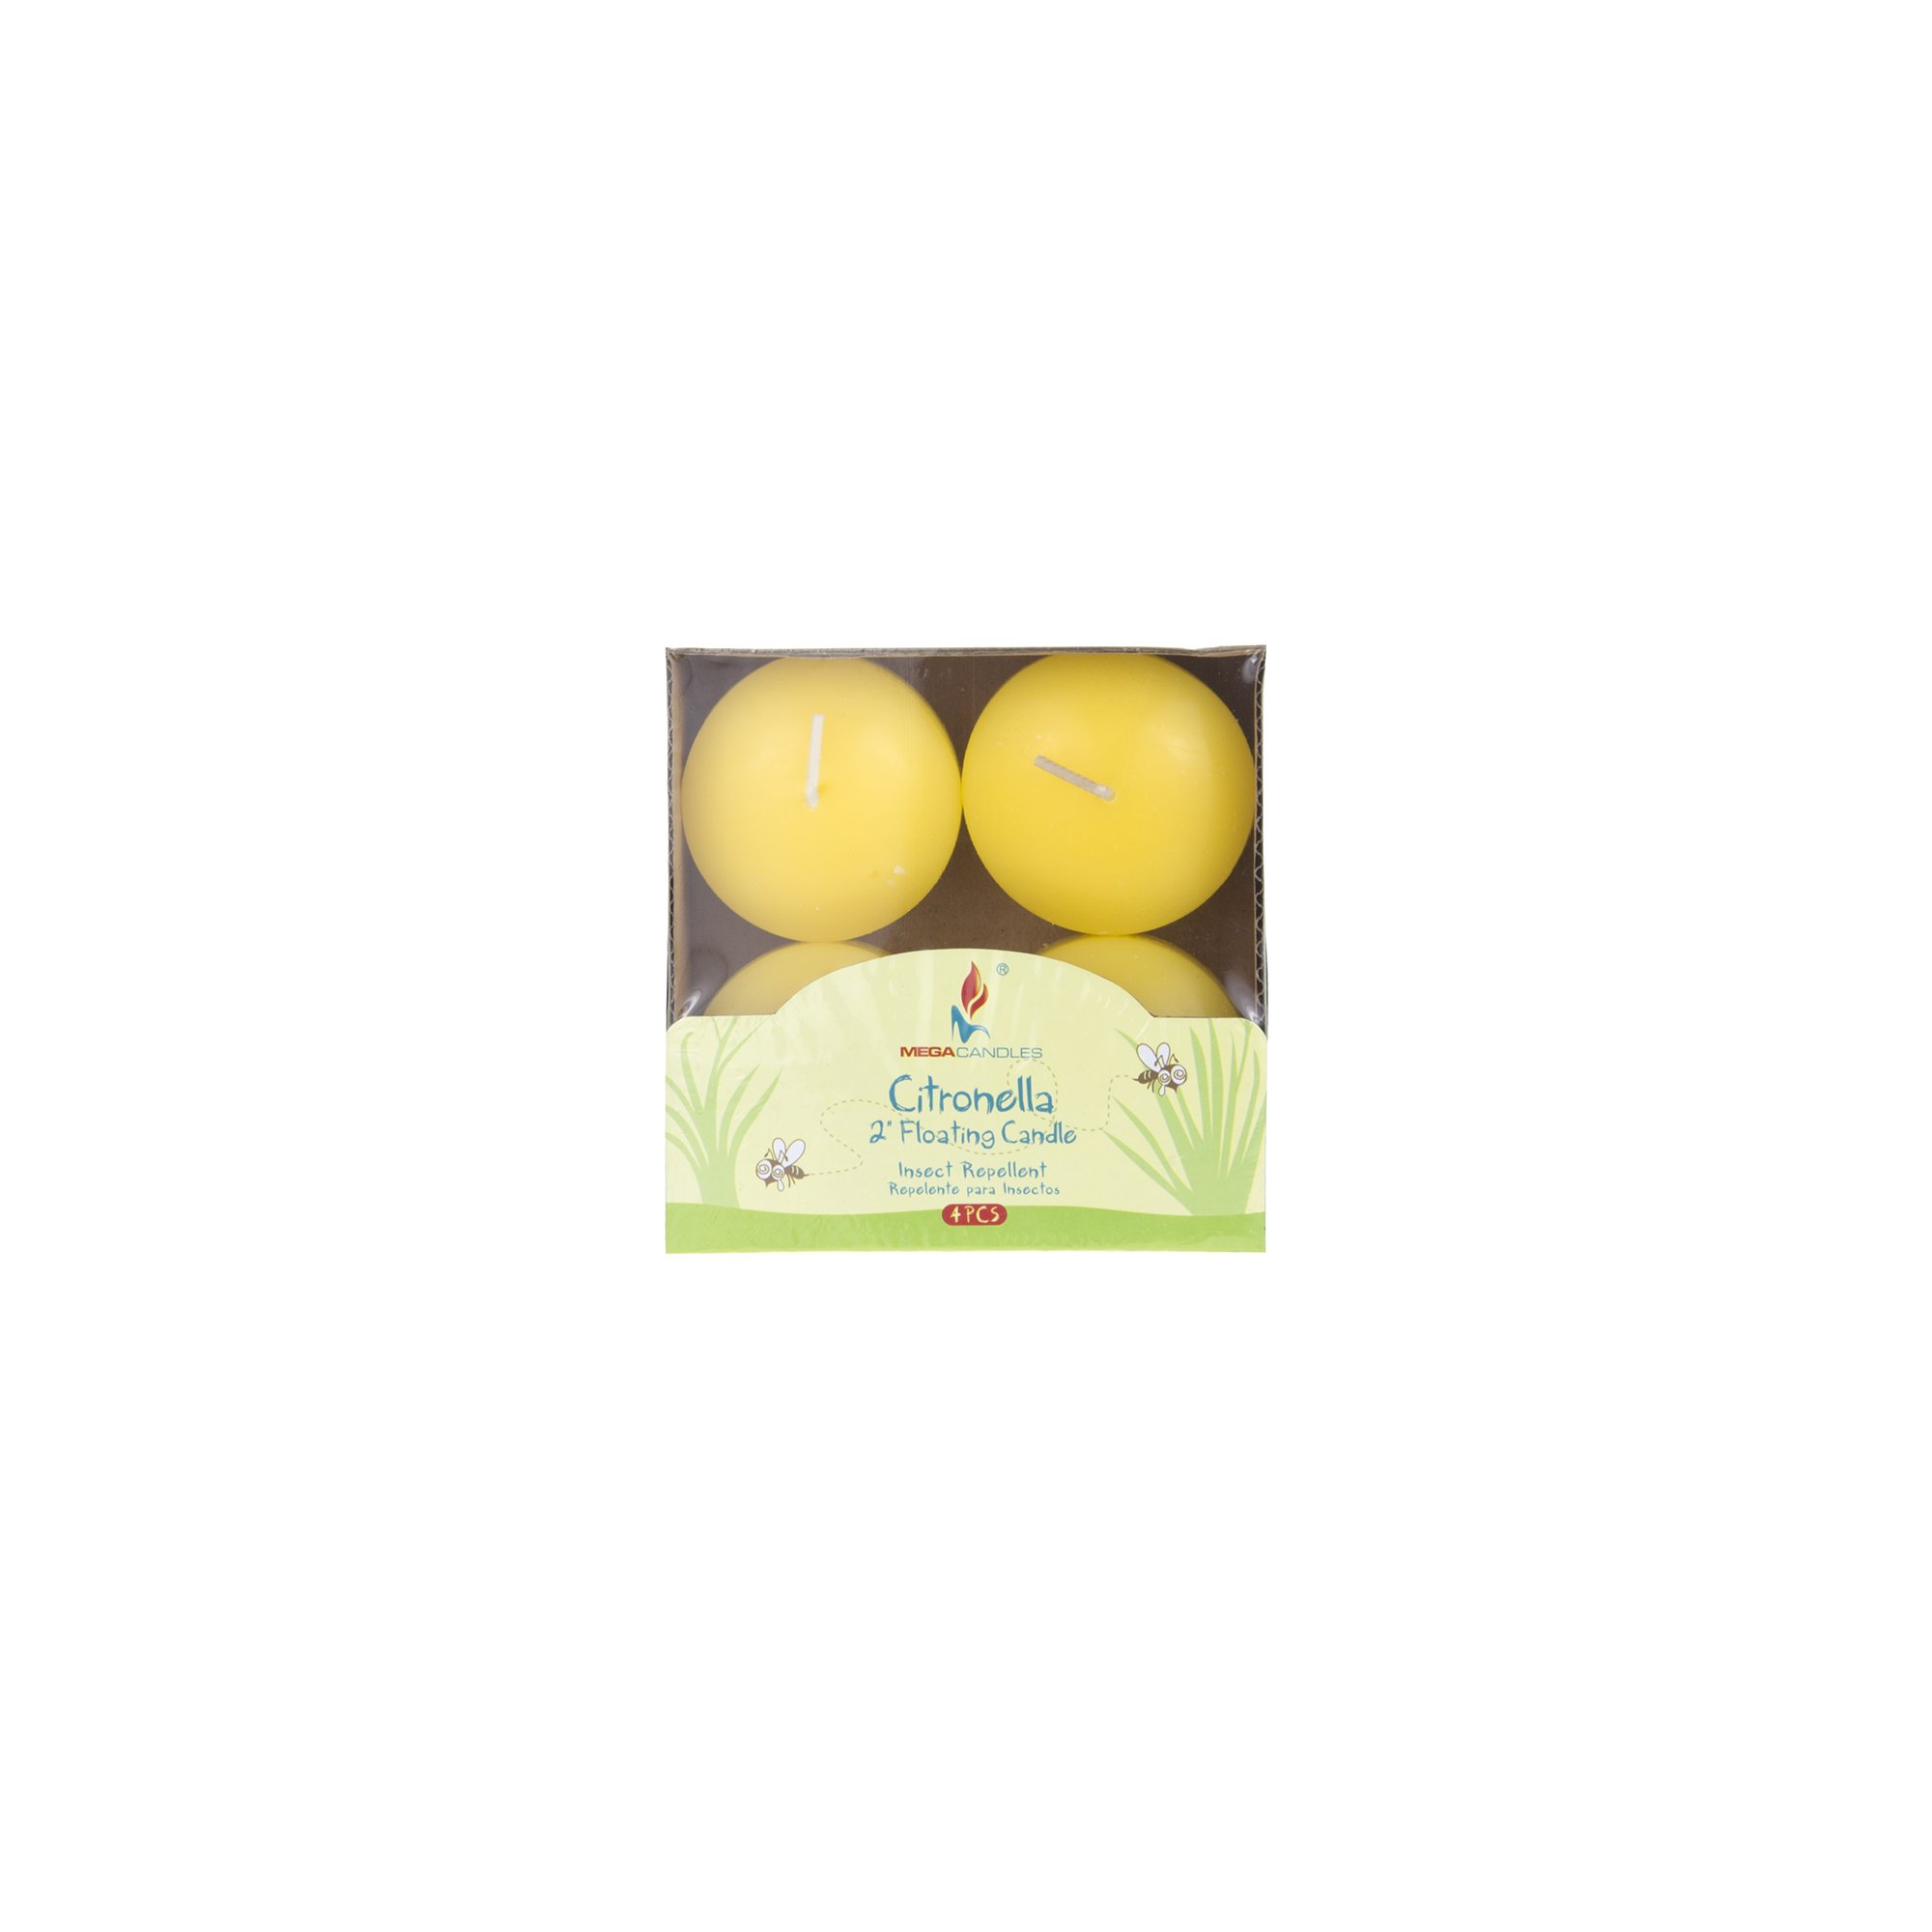 Mega Candles 12 pcs Citronella Floating Disc Candle | Hand Poured Paraffin Wax Candles 2'' Diameter | Bug Repellent Candles For Indoor And Outdoor Use | Everyday Candles For Mosquitoes And Insects by Mega Candles